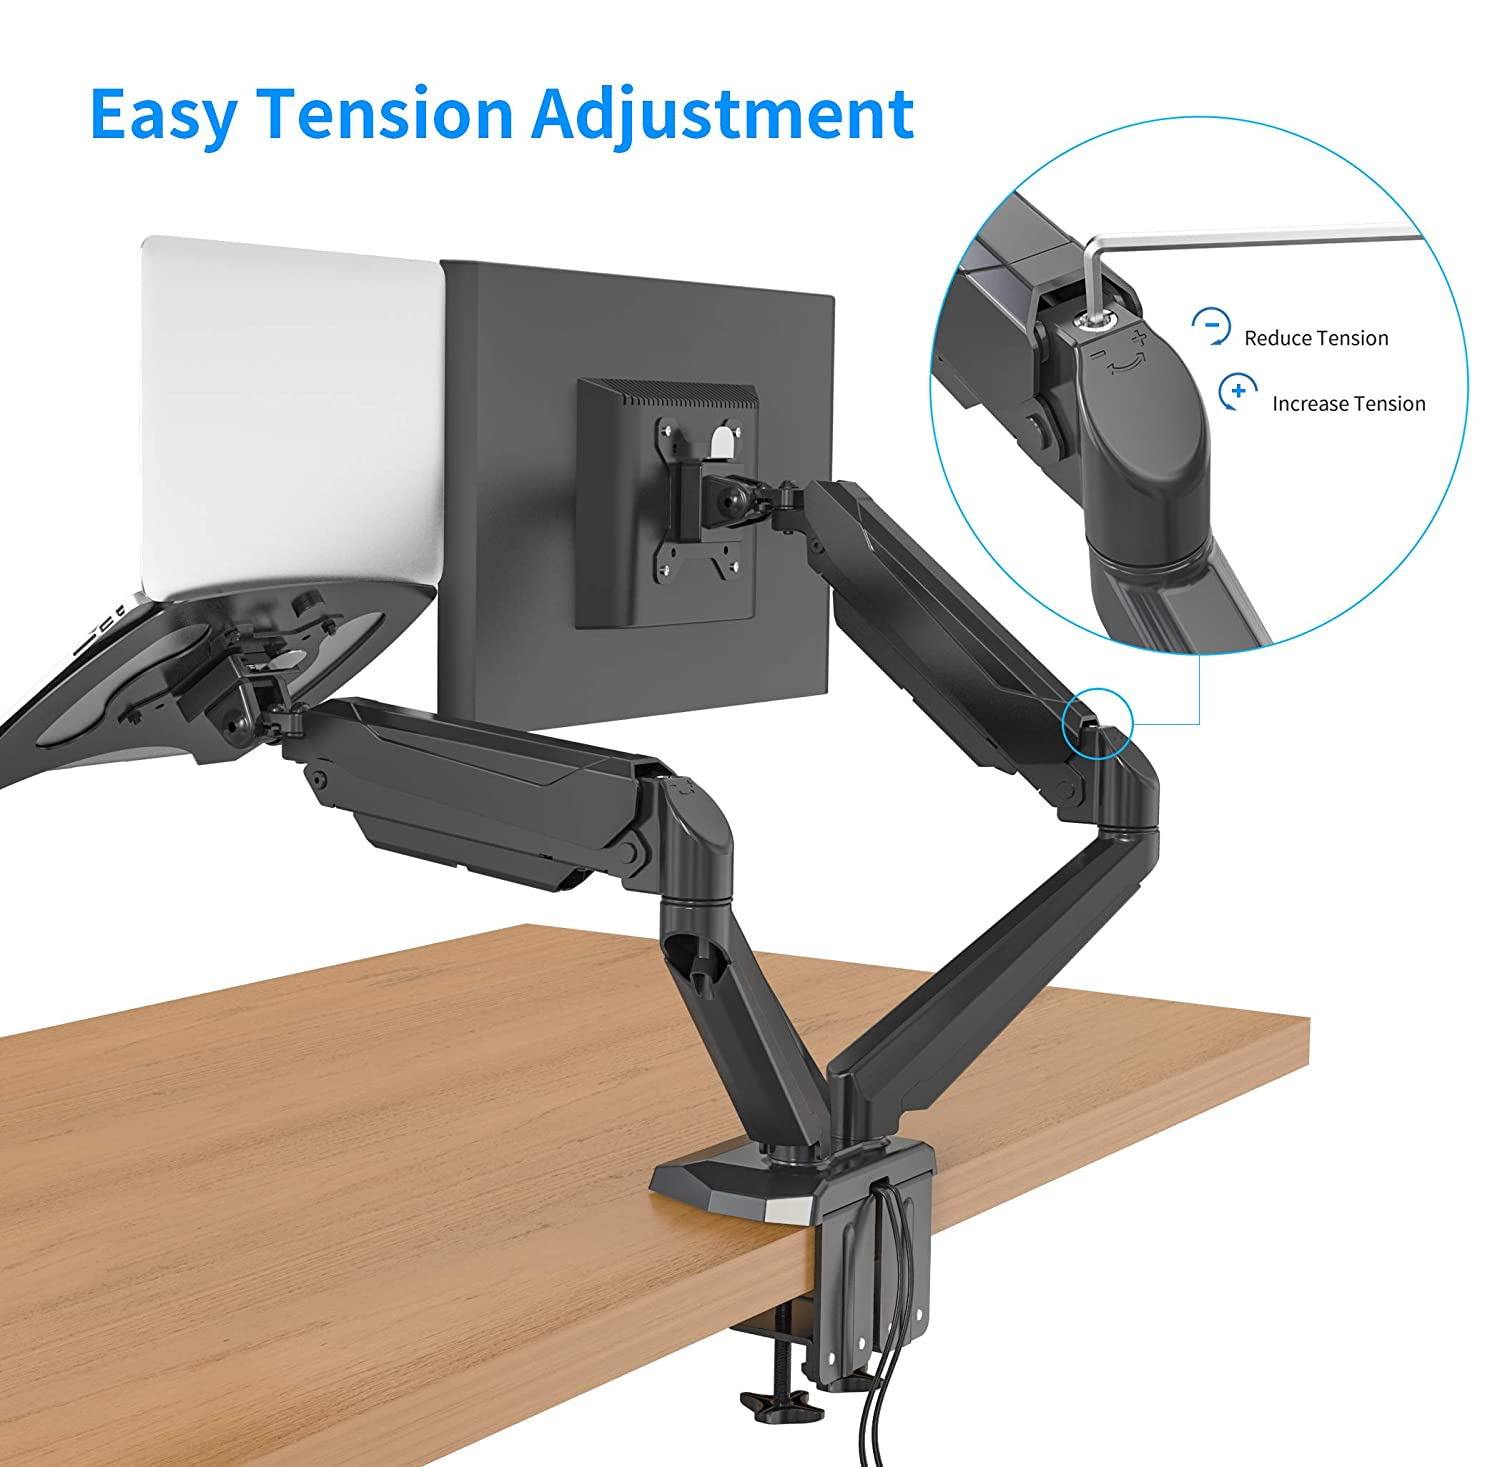 SA-GM224U+D15 Fully Adjustable Dual Gas Spring 2 in 1 Monitor /& Laptop OR Dual Monitors Mount Stand with 2 Swing Arms for 15-32 Monitors Both Desk Clamp and Grommet Options in the Box Silver-32